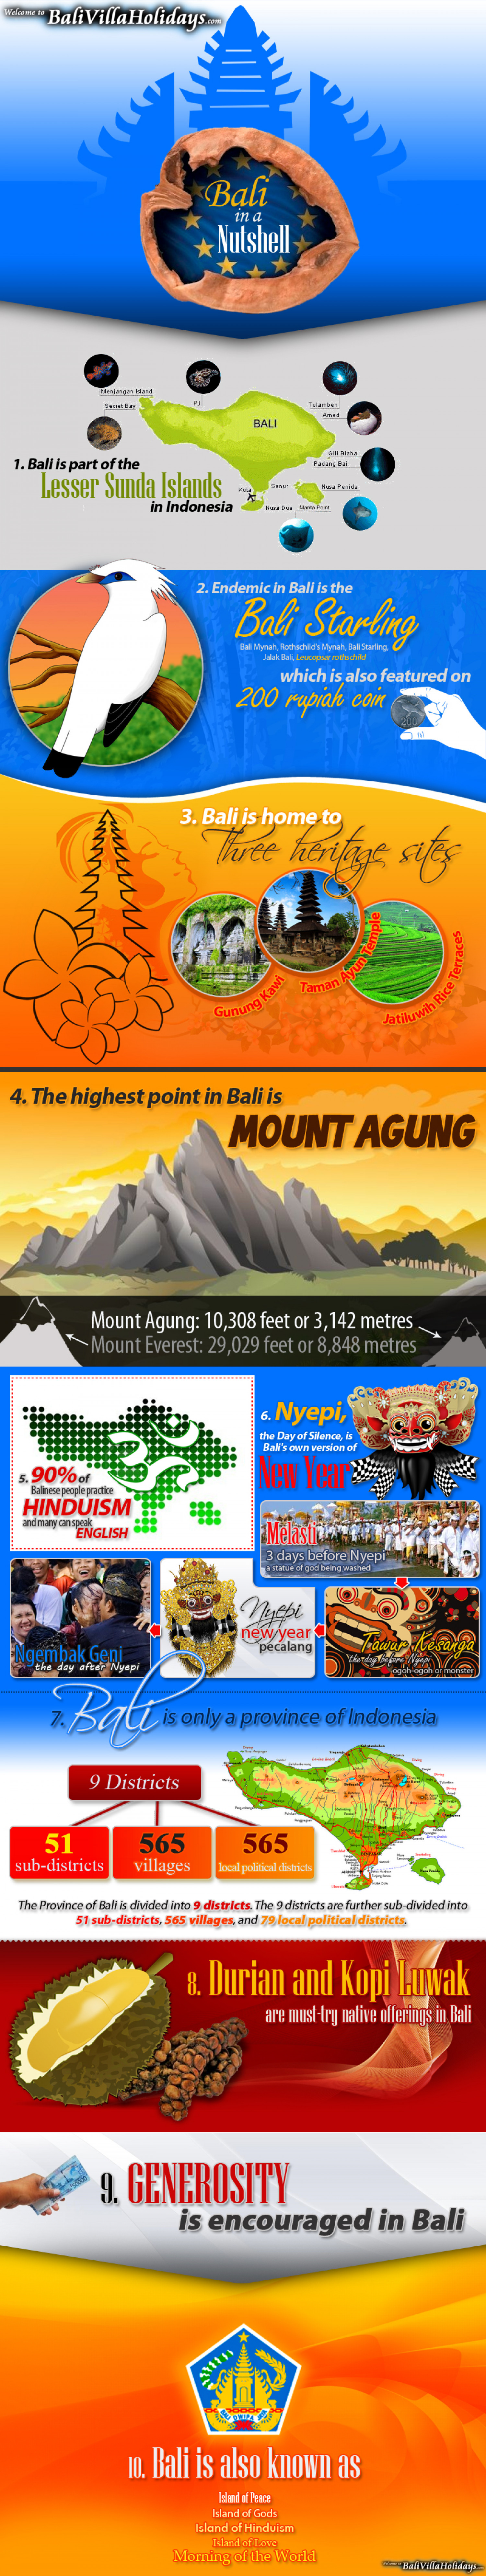 Bali in a Nutshell Infographic